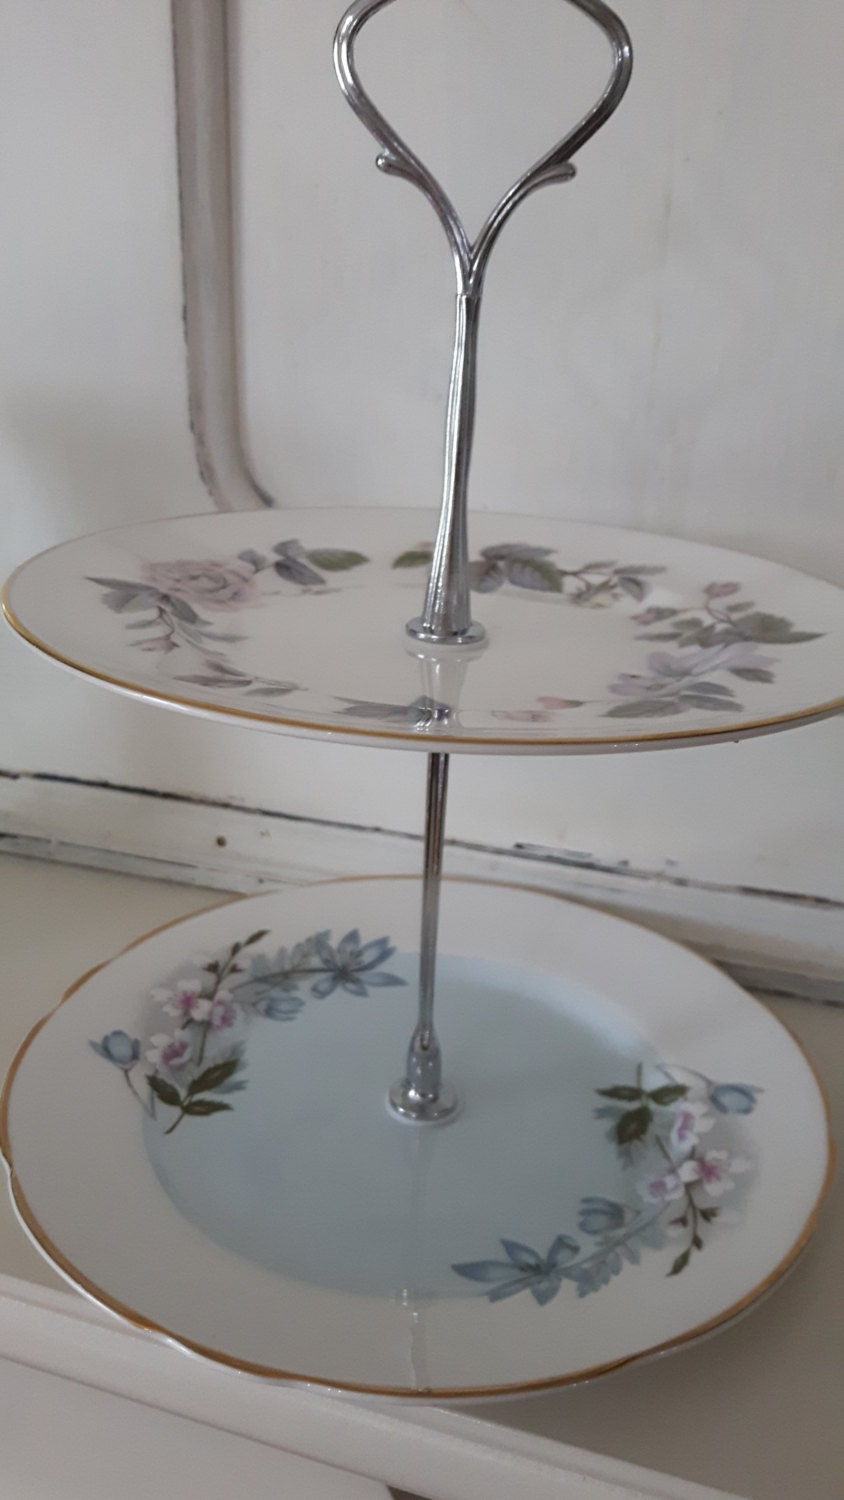 Hand made vintage china cake stand, trinket stand, muted blue and grey floral design